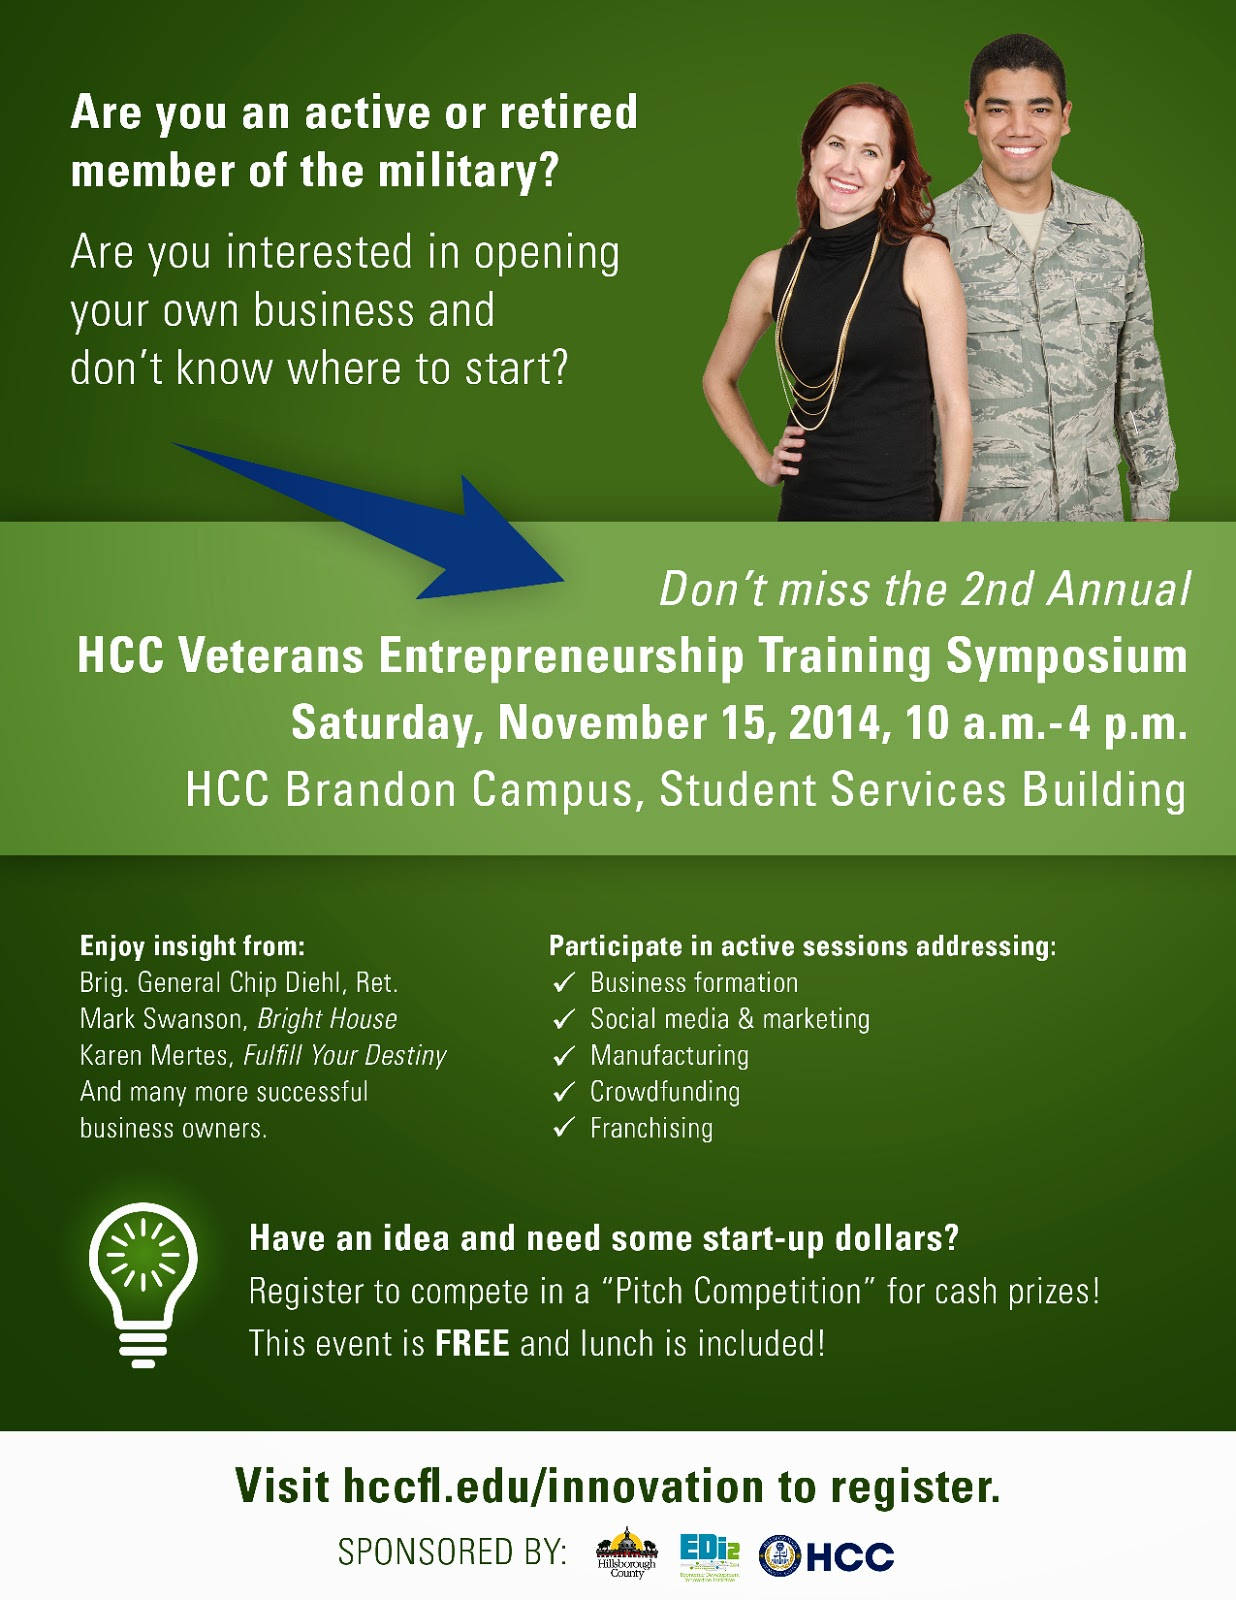 FLATE Focus Florida TRADE HCC Helps Veterans Join the High Tech